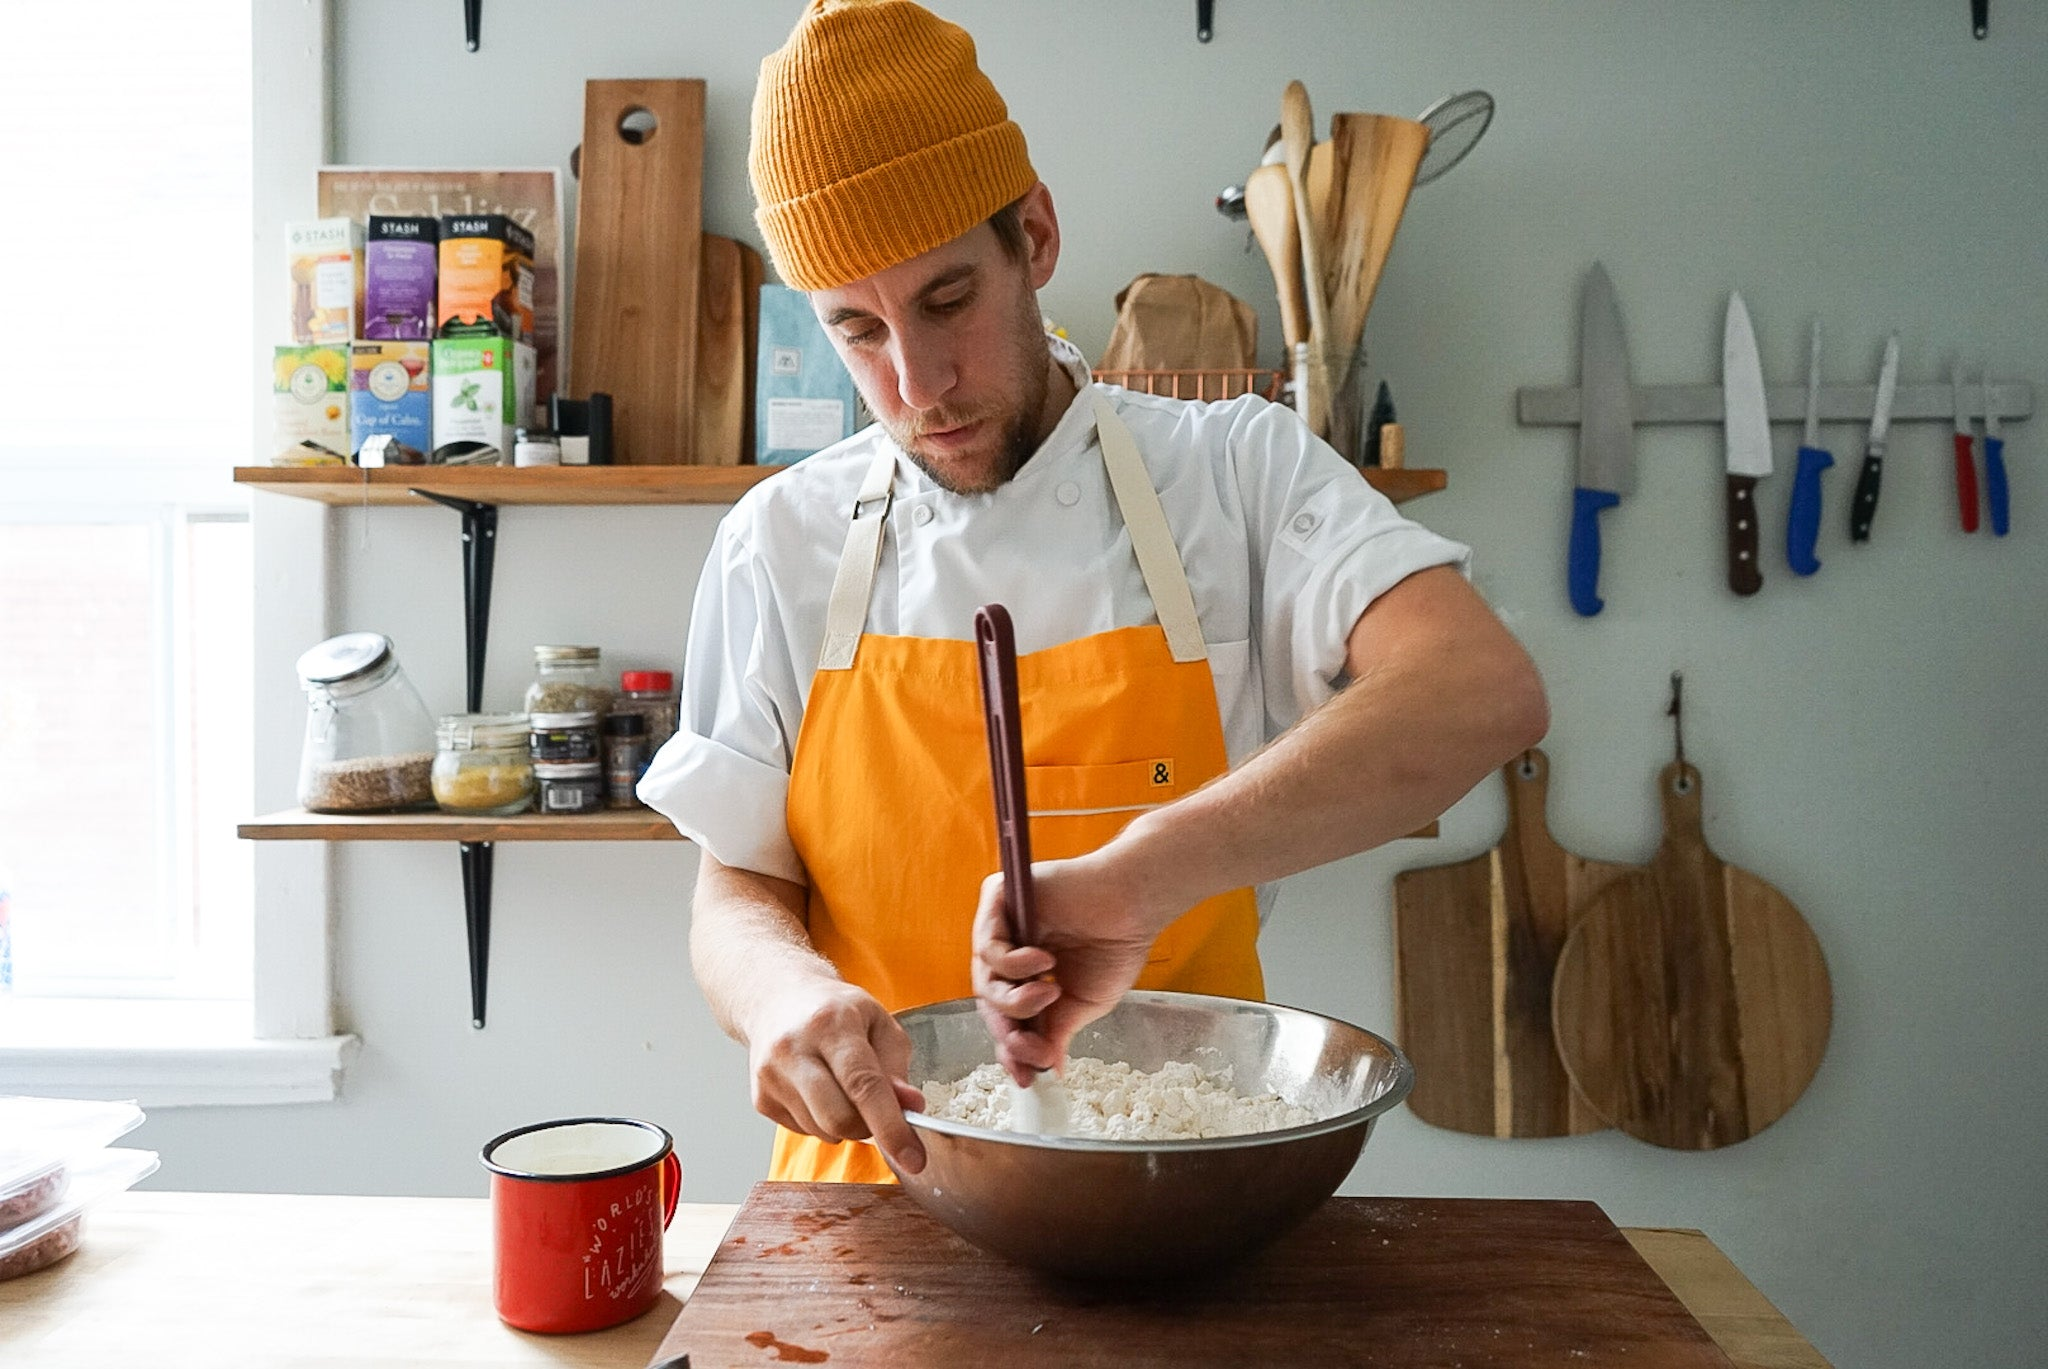 Fraser Fitzgerald mixing the ingredients of the tourtiere pie crust wearing orange in his kitchen